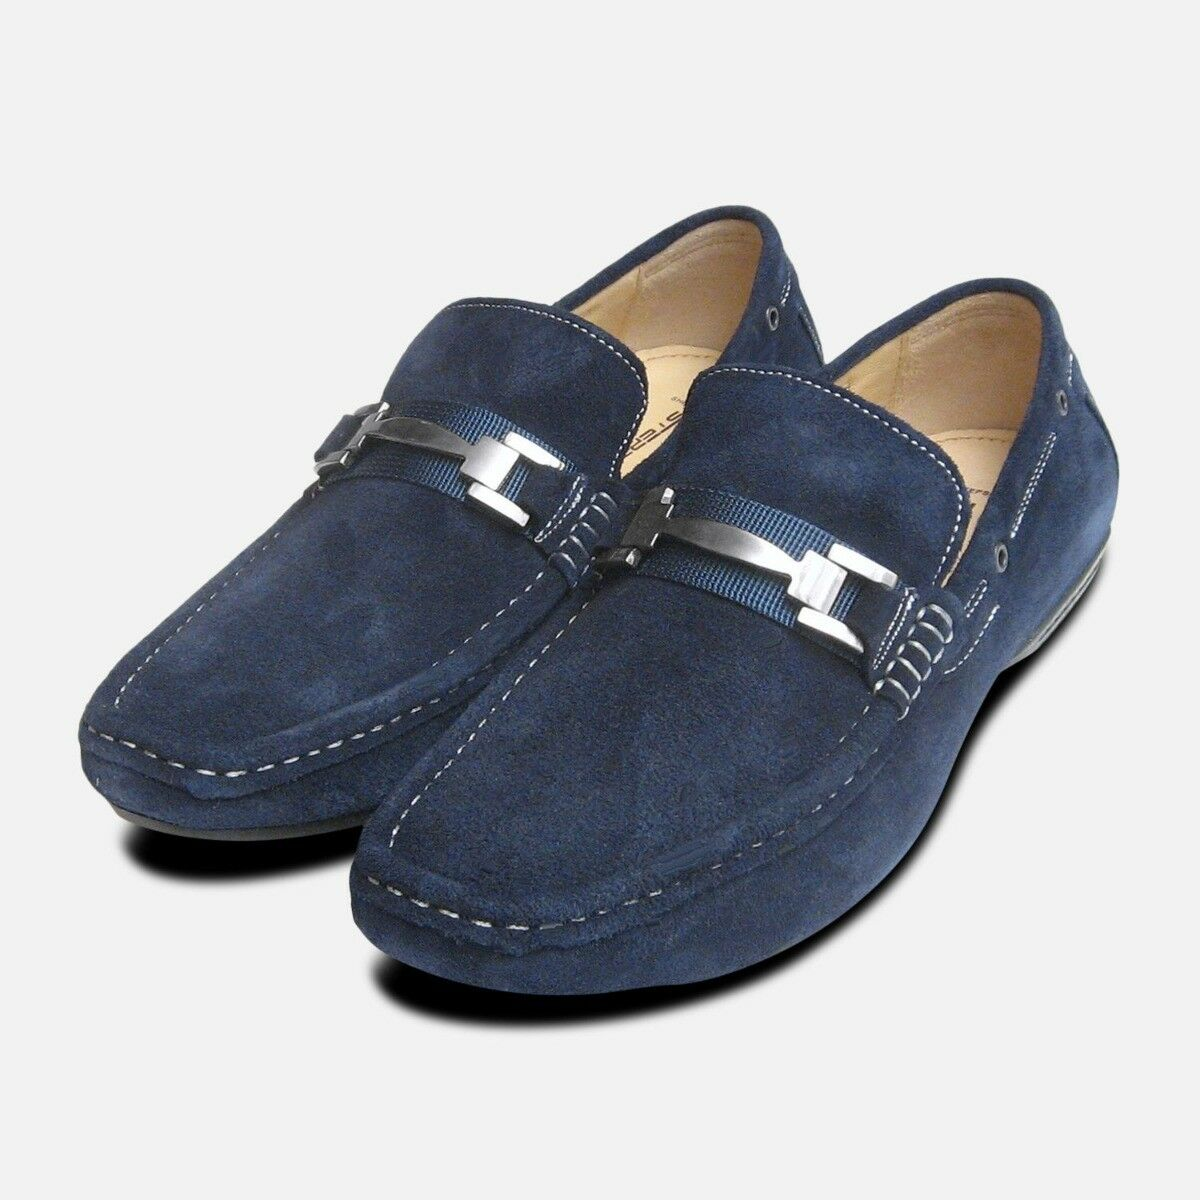 Designer Navy bluee Suede Loafers by Steptronic Delta shoes